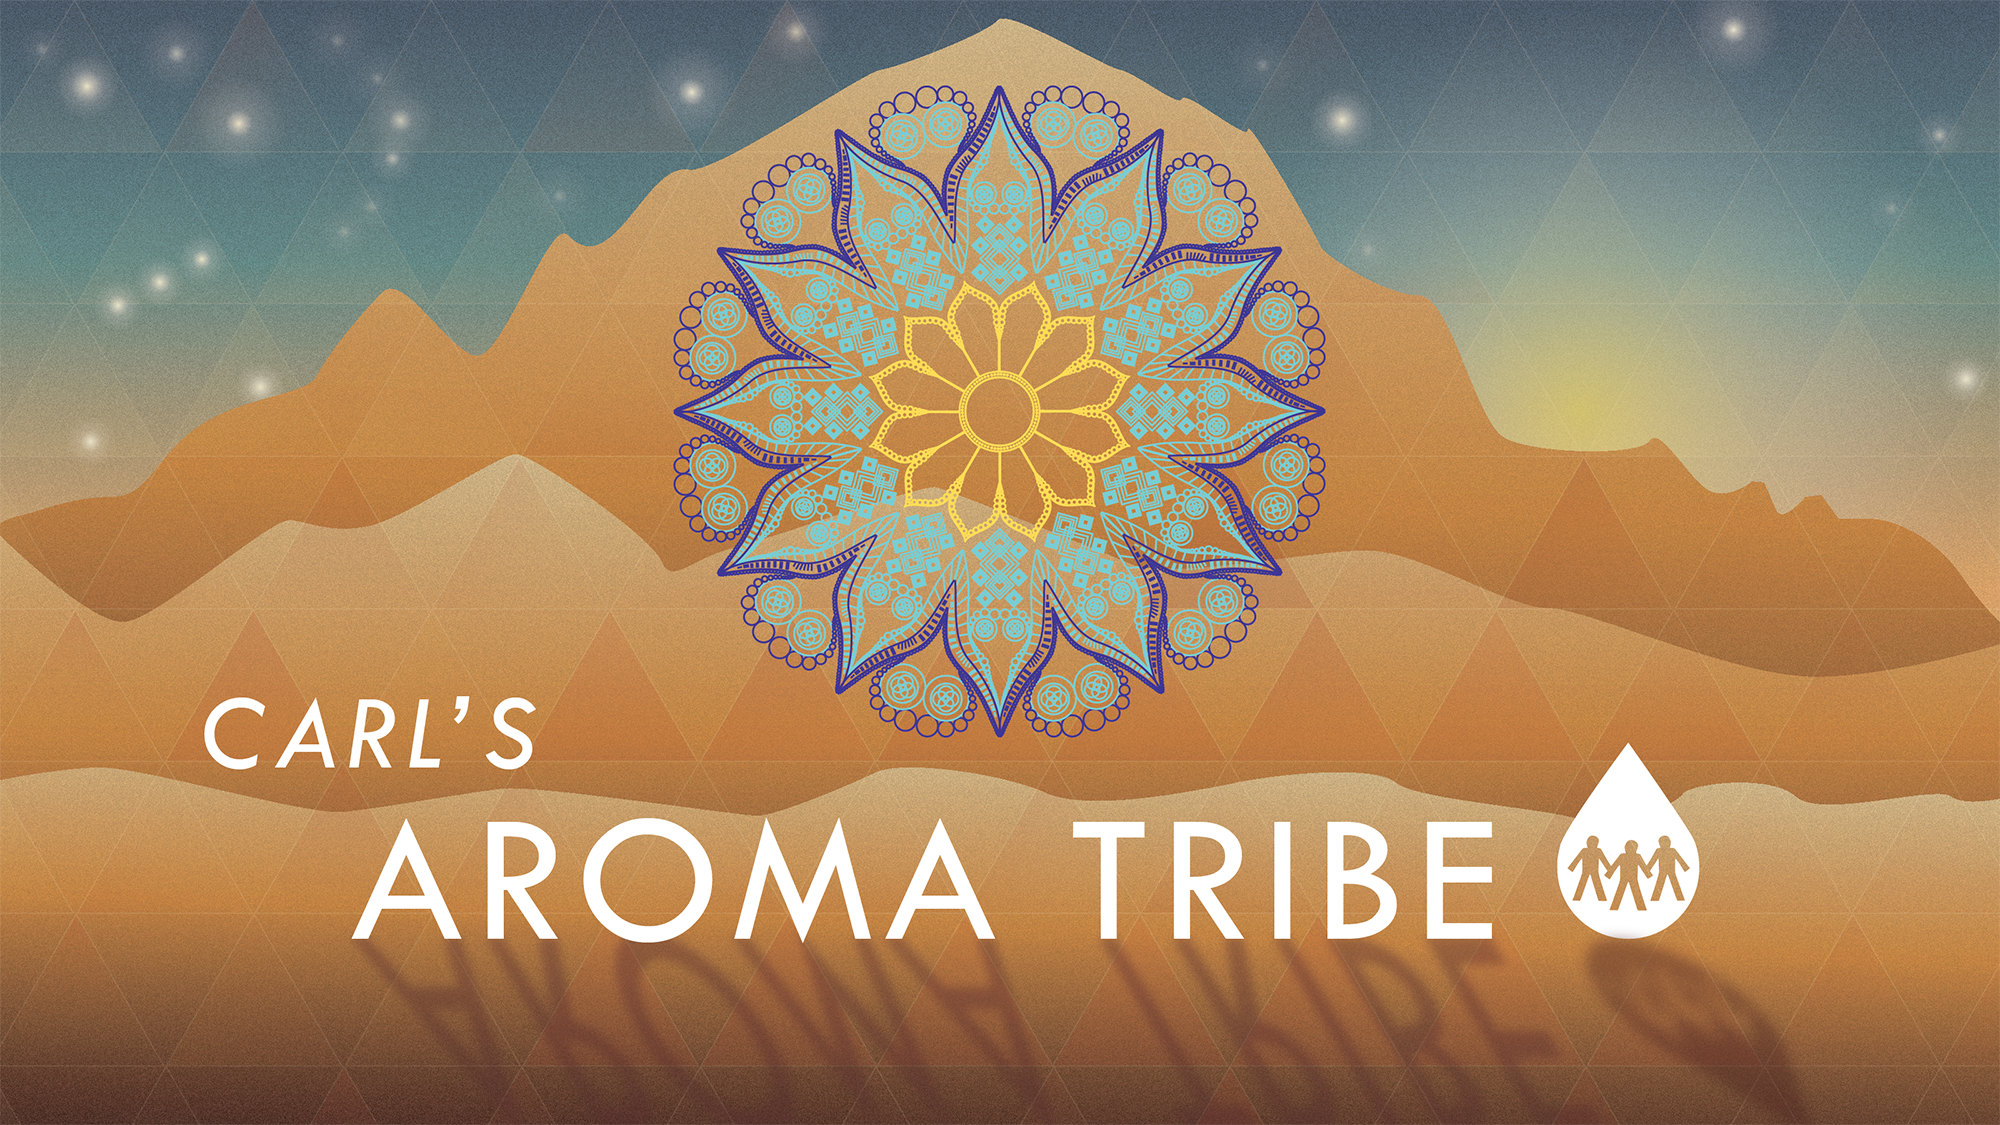 aroma tribe intro - big lotus - with stars-01.png